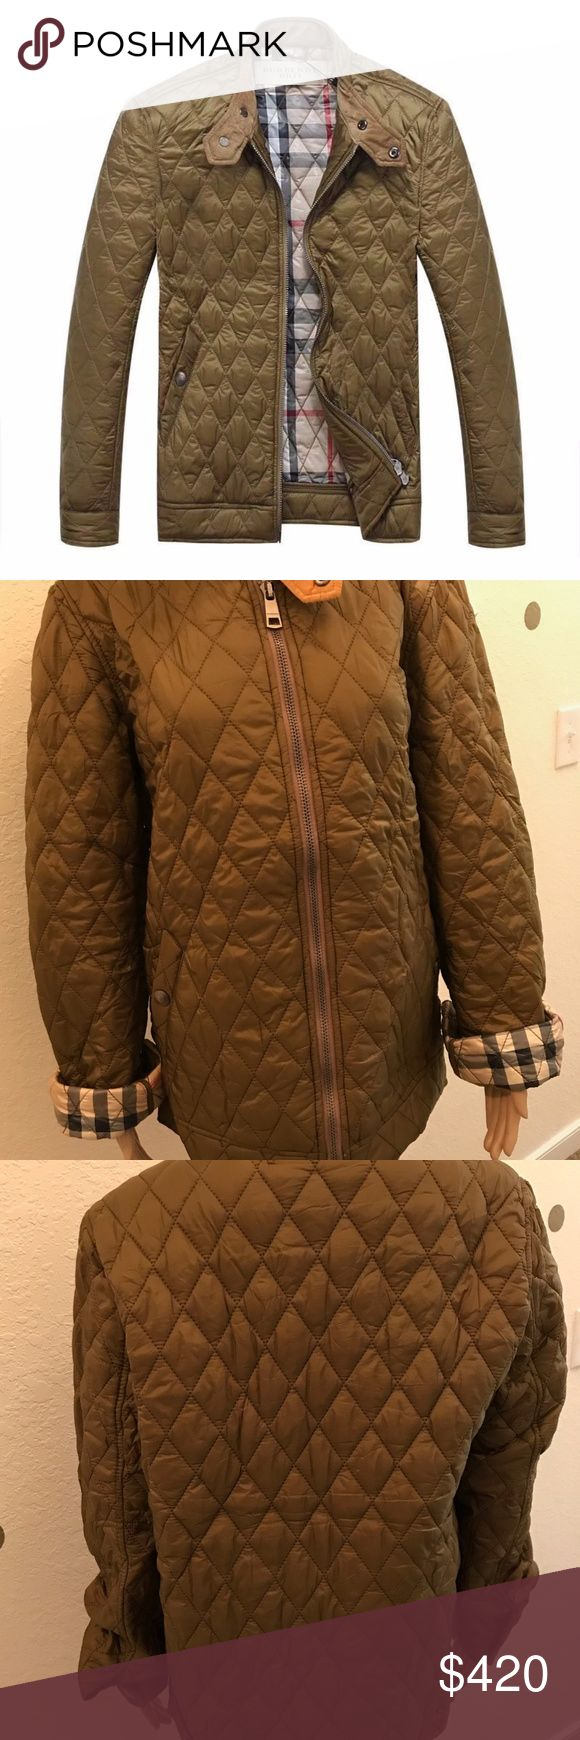 """NWT 100% AUTH BURBERRY BRIT MENS QUILTED JACKET NWT 100% AUTH BURBERRY BRIT MENS QUILTED JACKET (NO DEFECTS) Retail: $649 Color: Black Size: LARGE (PLEASE READ MEASUREMENTS BELOW FOR ACCURATE SIZING) Measurements: Chest: 21"""", Shoulder to hem: 28"""", Underarm pit to hem: 16.5"""", Sleeve: 27"""" PLEASE ASK ALL NEEDED QUESTIONS PRIOR TO PURCHASING!!!  PROMPT SHIPPING!!!  PERFECT STYLISH APPAREL FOR THE FALL! Burberry Jackets & Coats"""